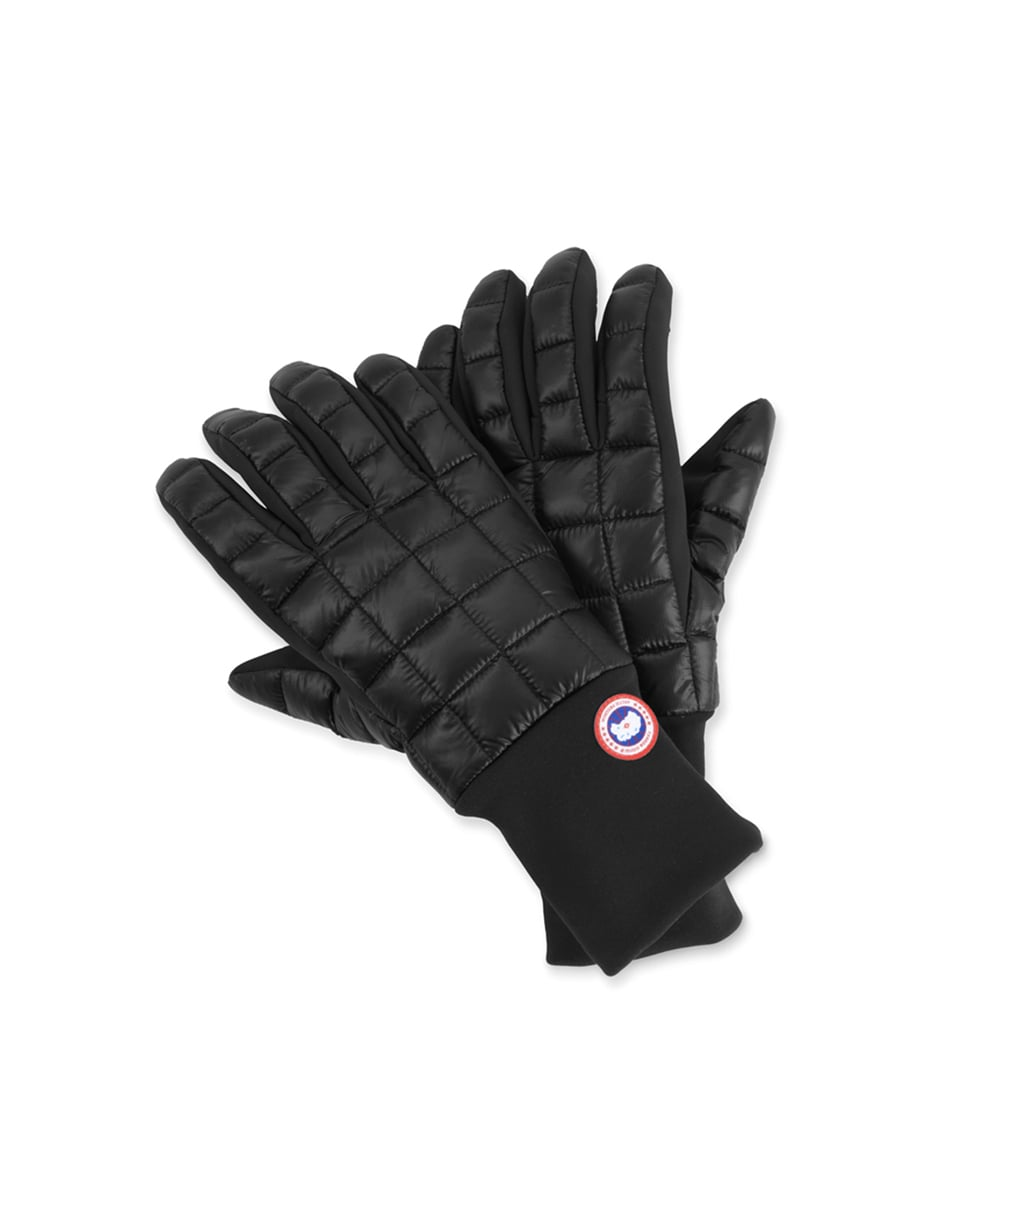 NORTHERN LINER GLOVE